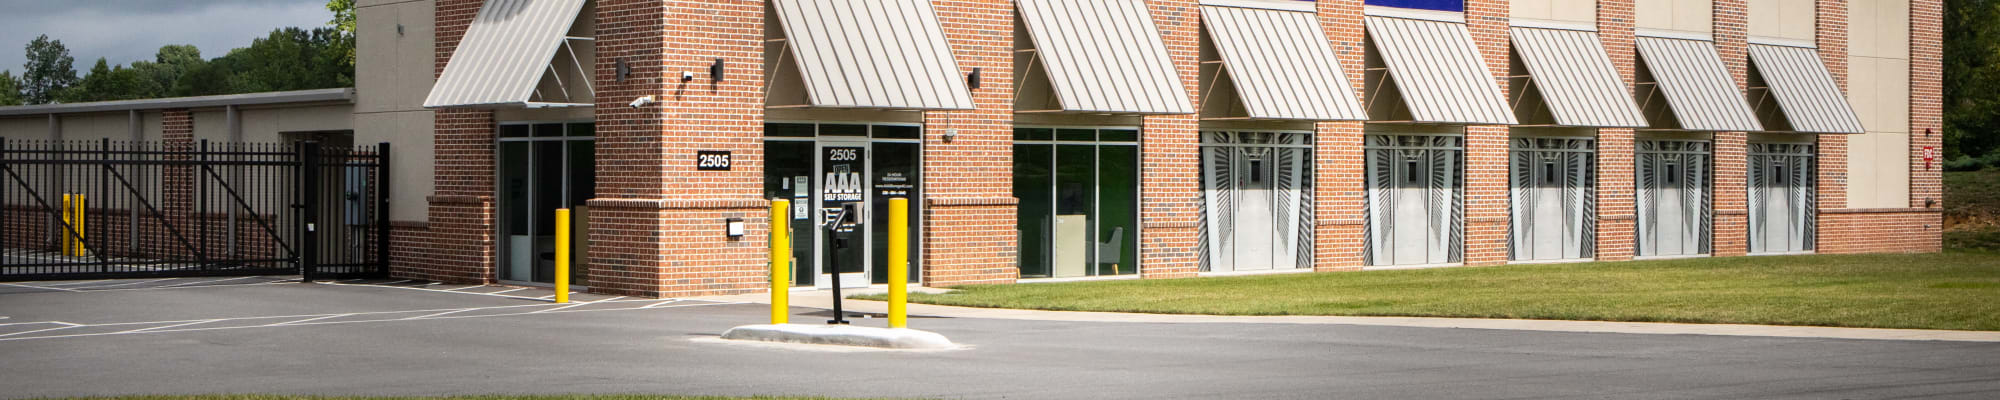 Read or write reviews about AAA Self Storage at Eastchester Dr in High Point, NC